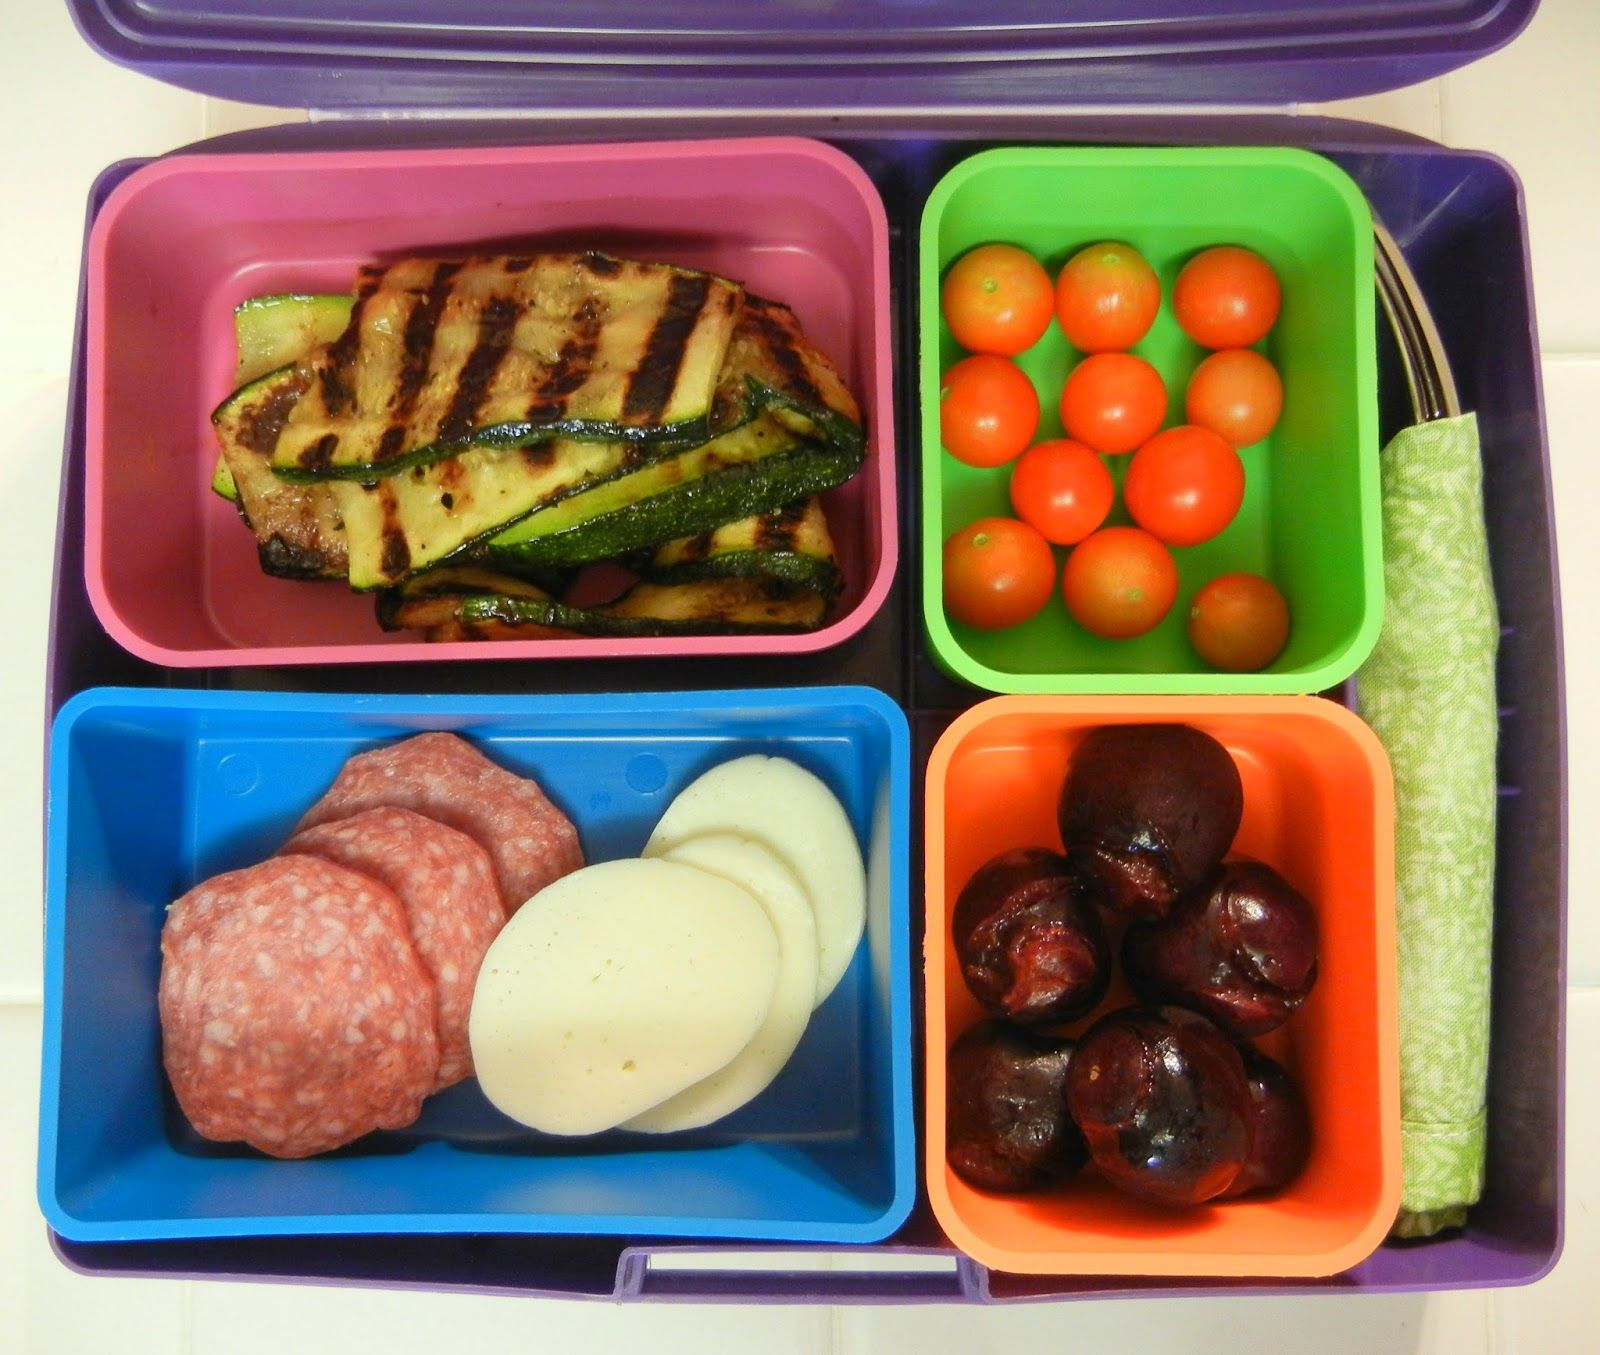 theworldaccordingtoeggface: July is National Picnic Month! A Bevy of Bento Box Lunches to ...